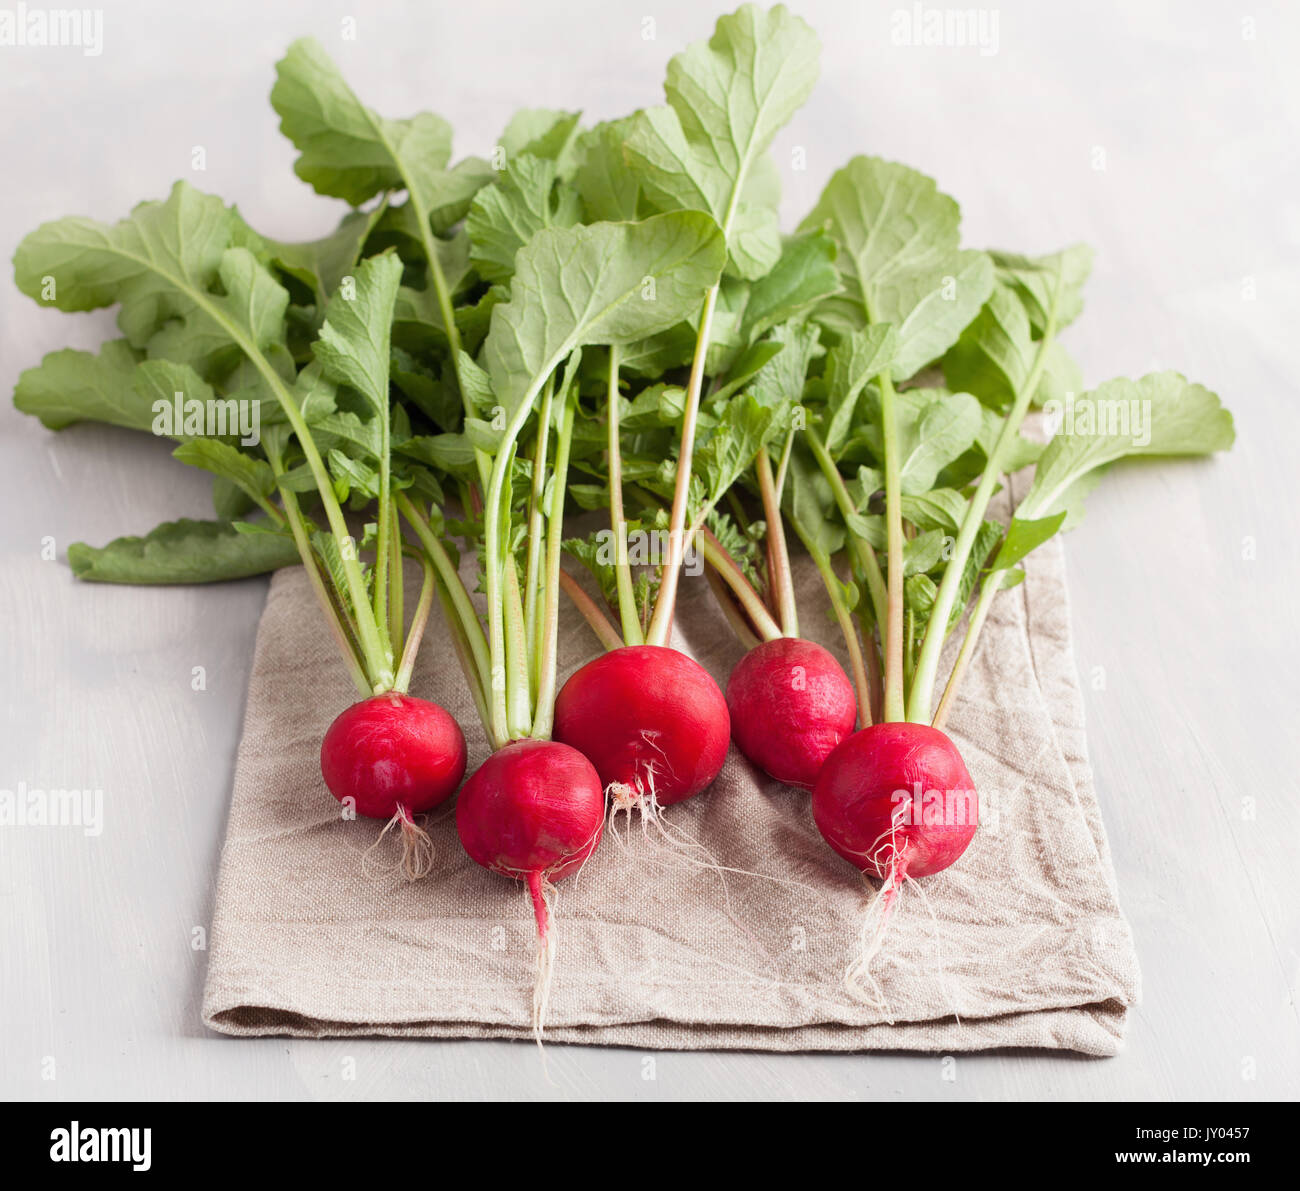 fresh raw radish with leaves over gray background - Stock Image